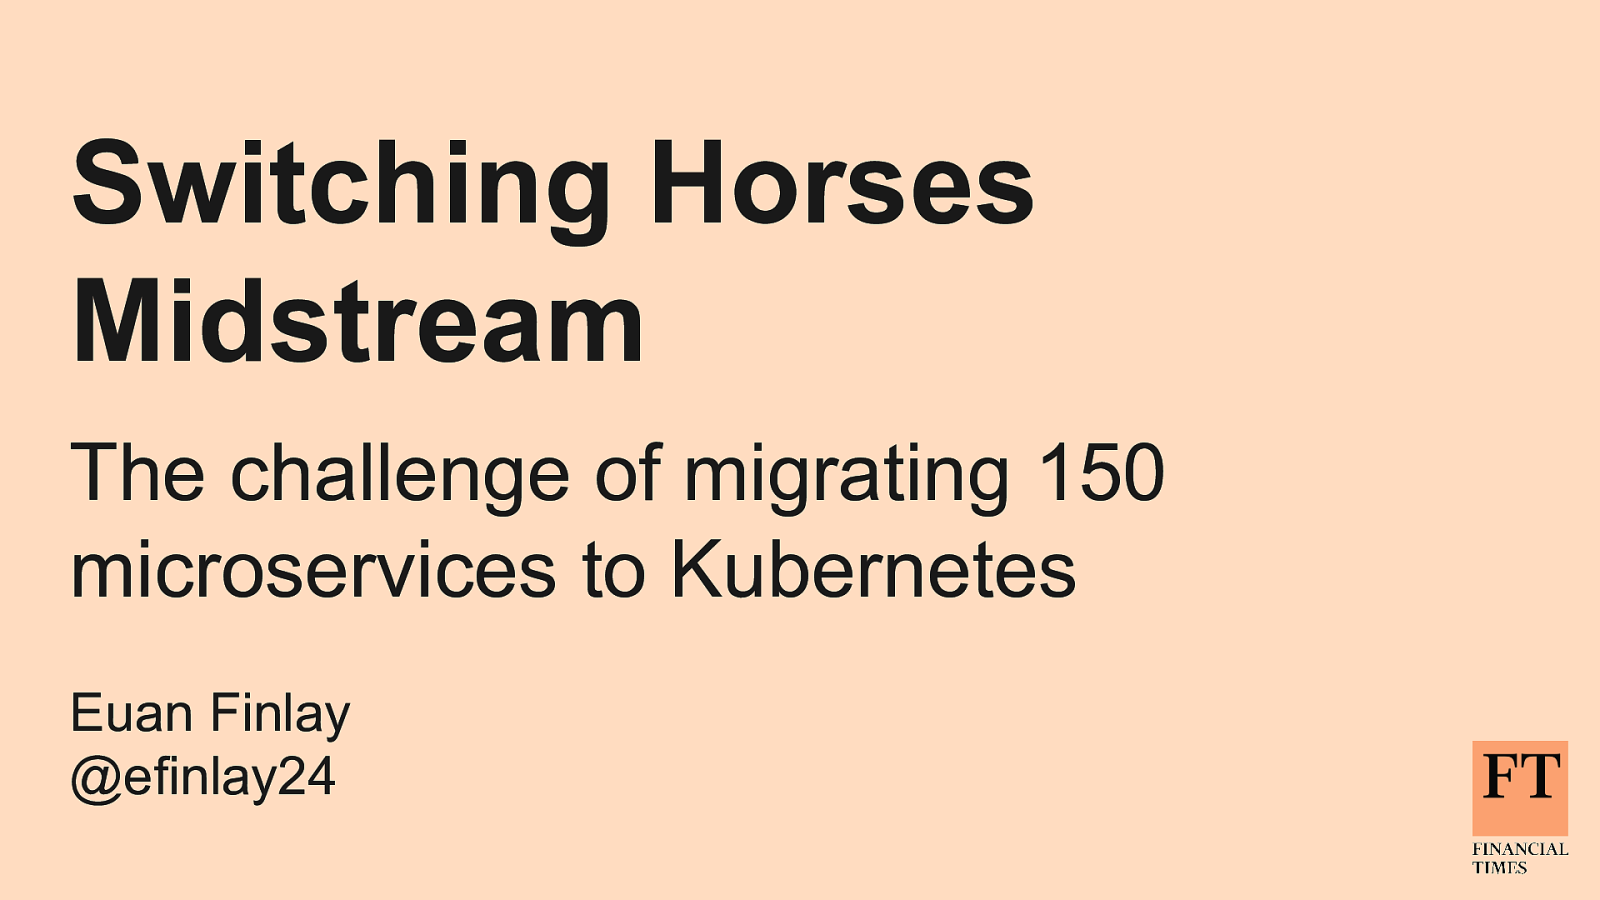 Switching Horses Midstream: The challenge of migrating 150 microservices to Kubernetes